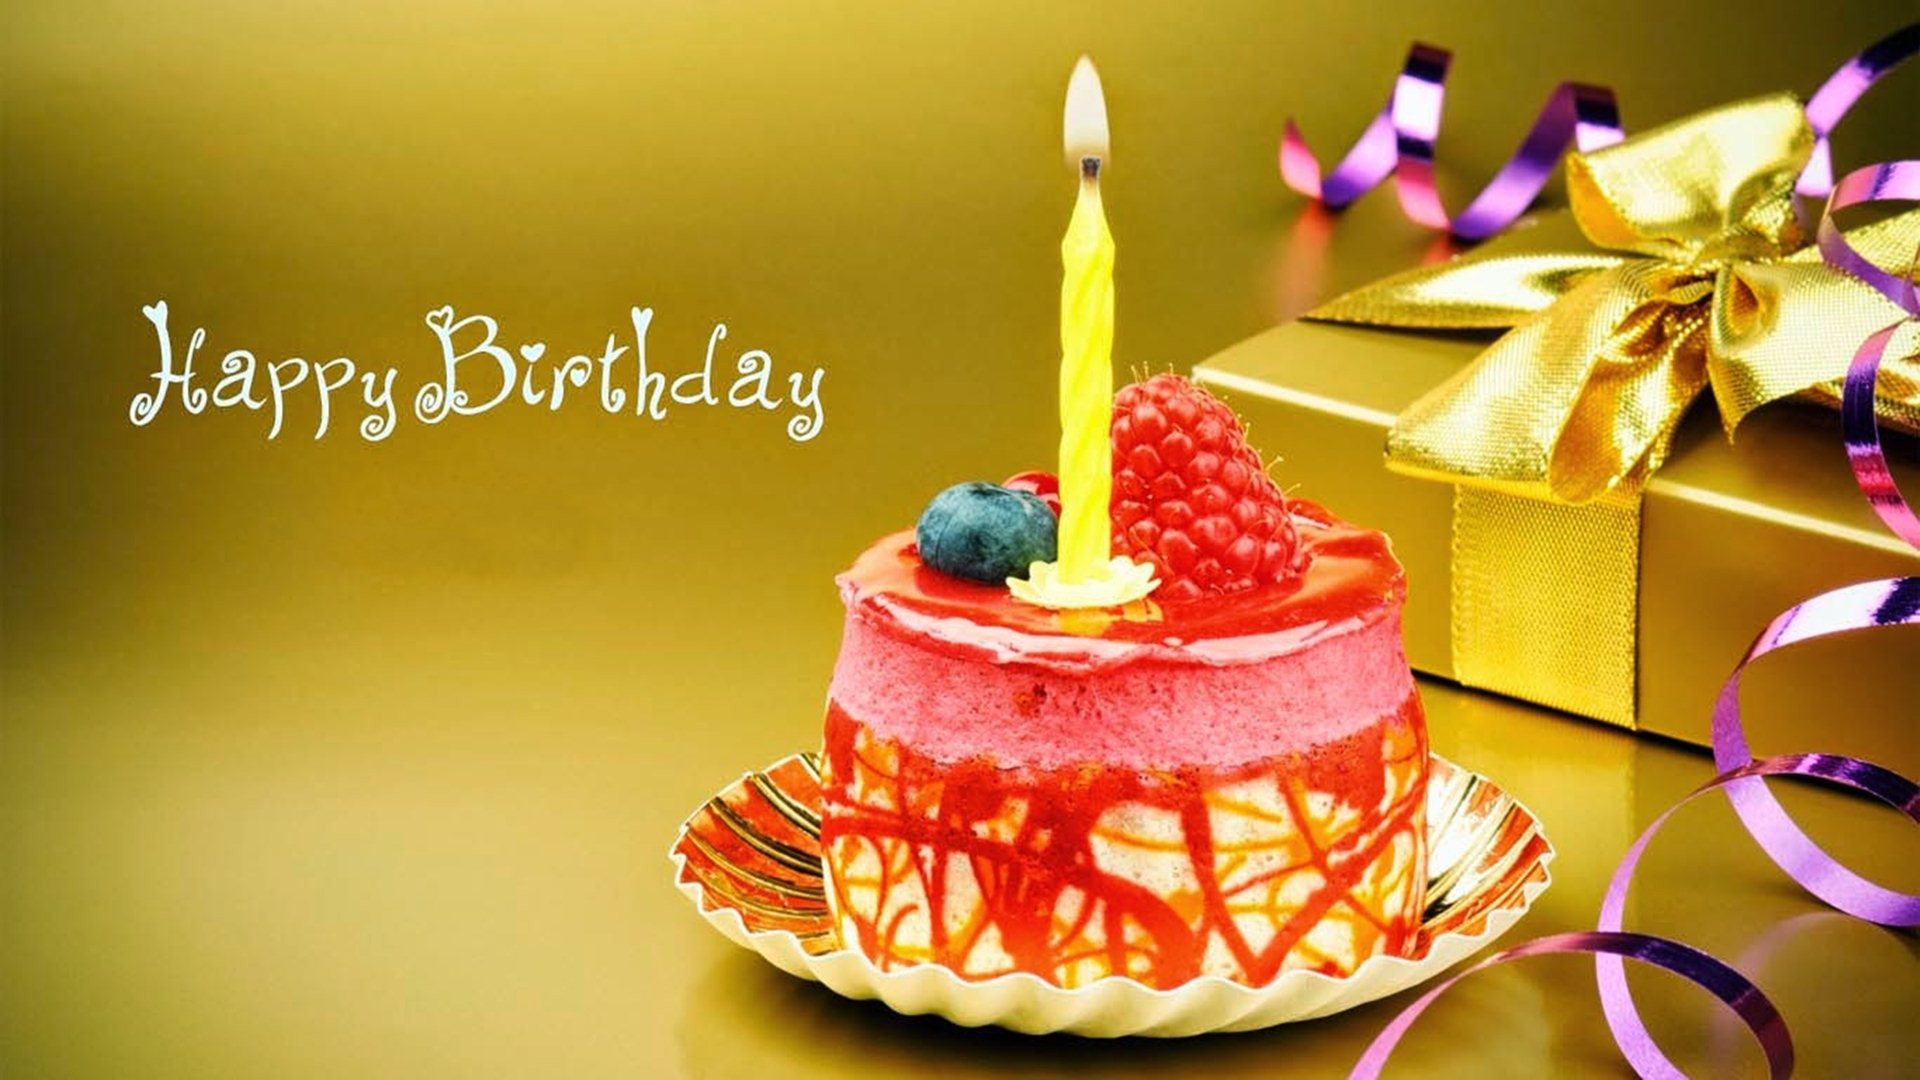 Best ideas about Image Of Happy Birthday Wish . Save or Pin birthday wishes images HD Now.